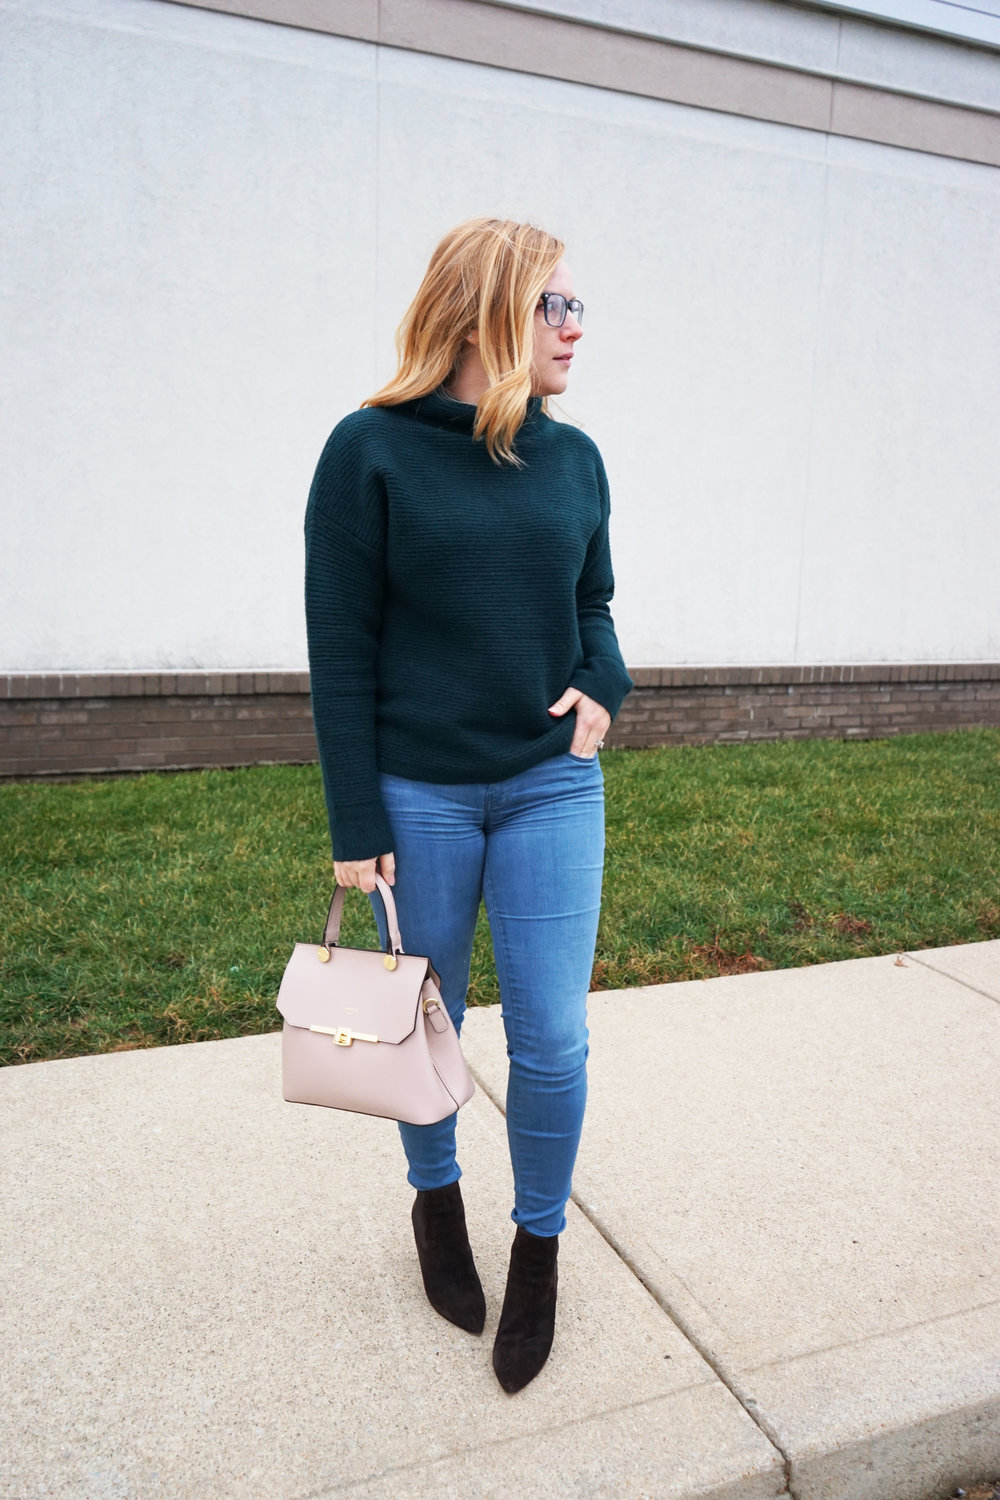 Maggie a la Mode - Madewell Southfield Mockneck sweater, J Brand 620 Super Skinny Jeans Impulse, M Gemi The Avanti Boot, Camelia Roma Leather Handbag Cameo